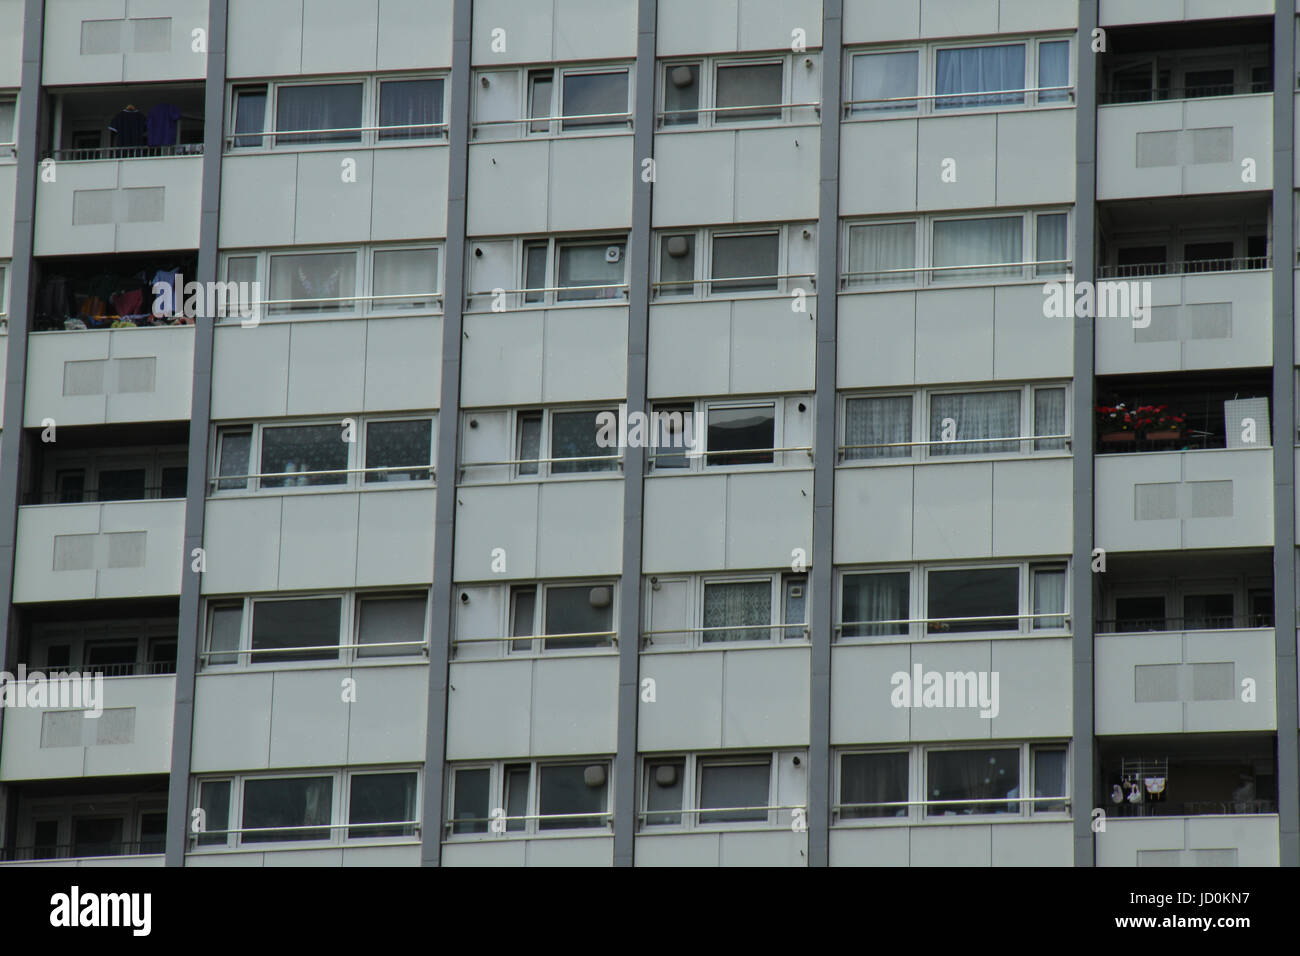 London, UK. 16th June, 2017. Tower blocks with cladding located in the borough of Kensington and Chelsea. Credit: - Stock Image